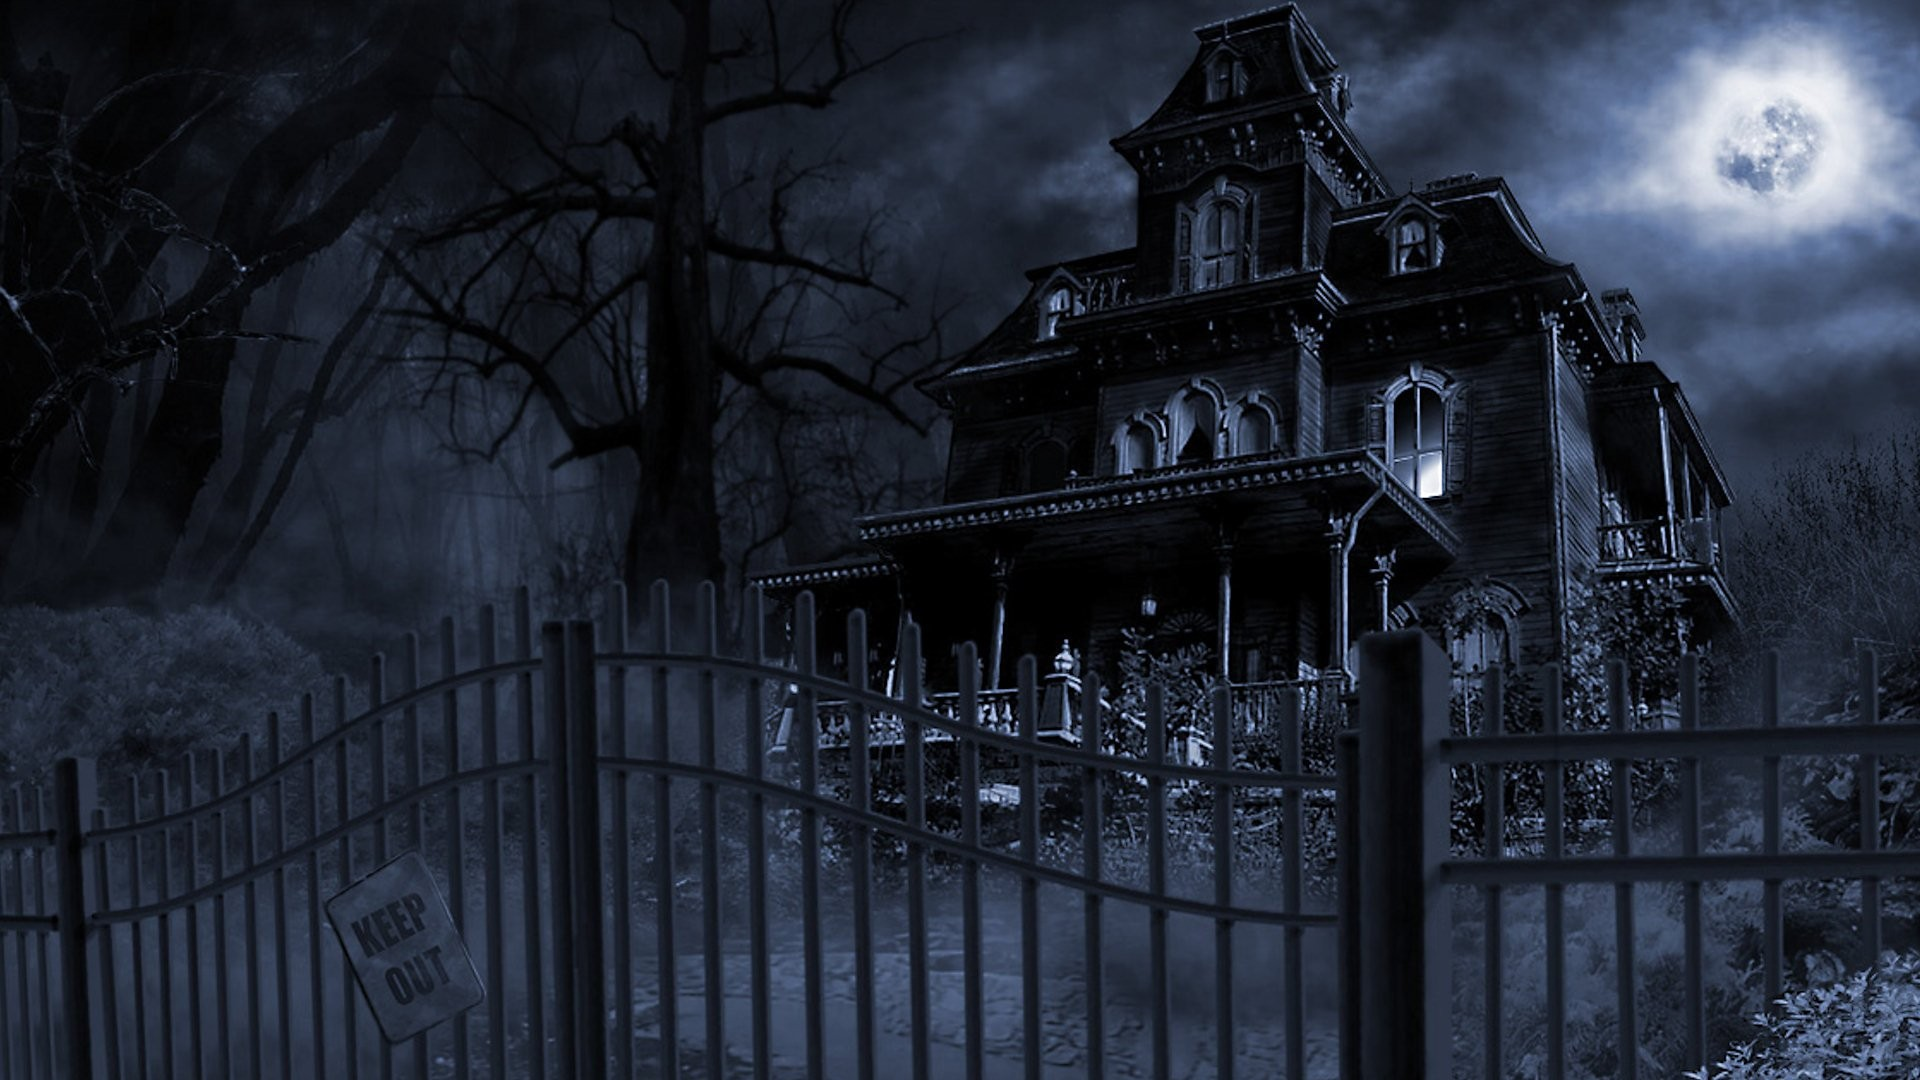 nature halloween paper house wallpaper images 1920x1080 1920x1080